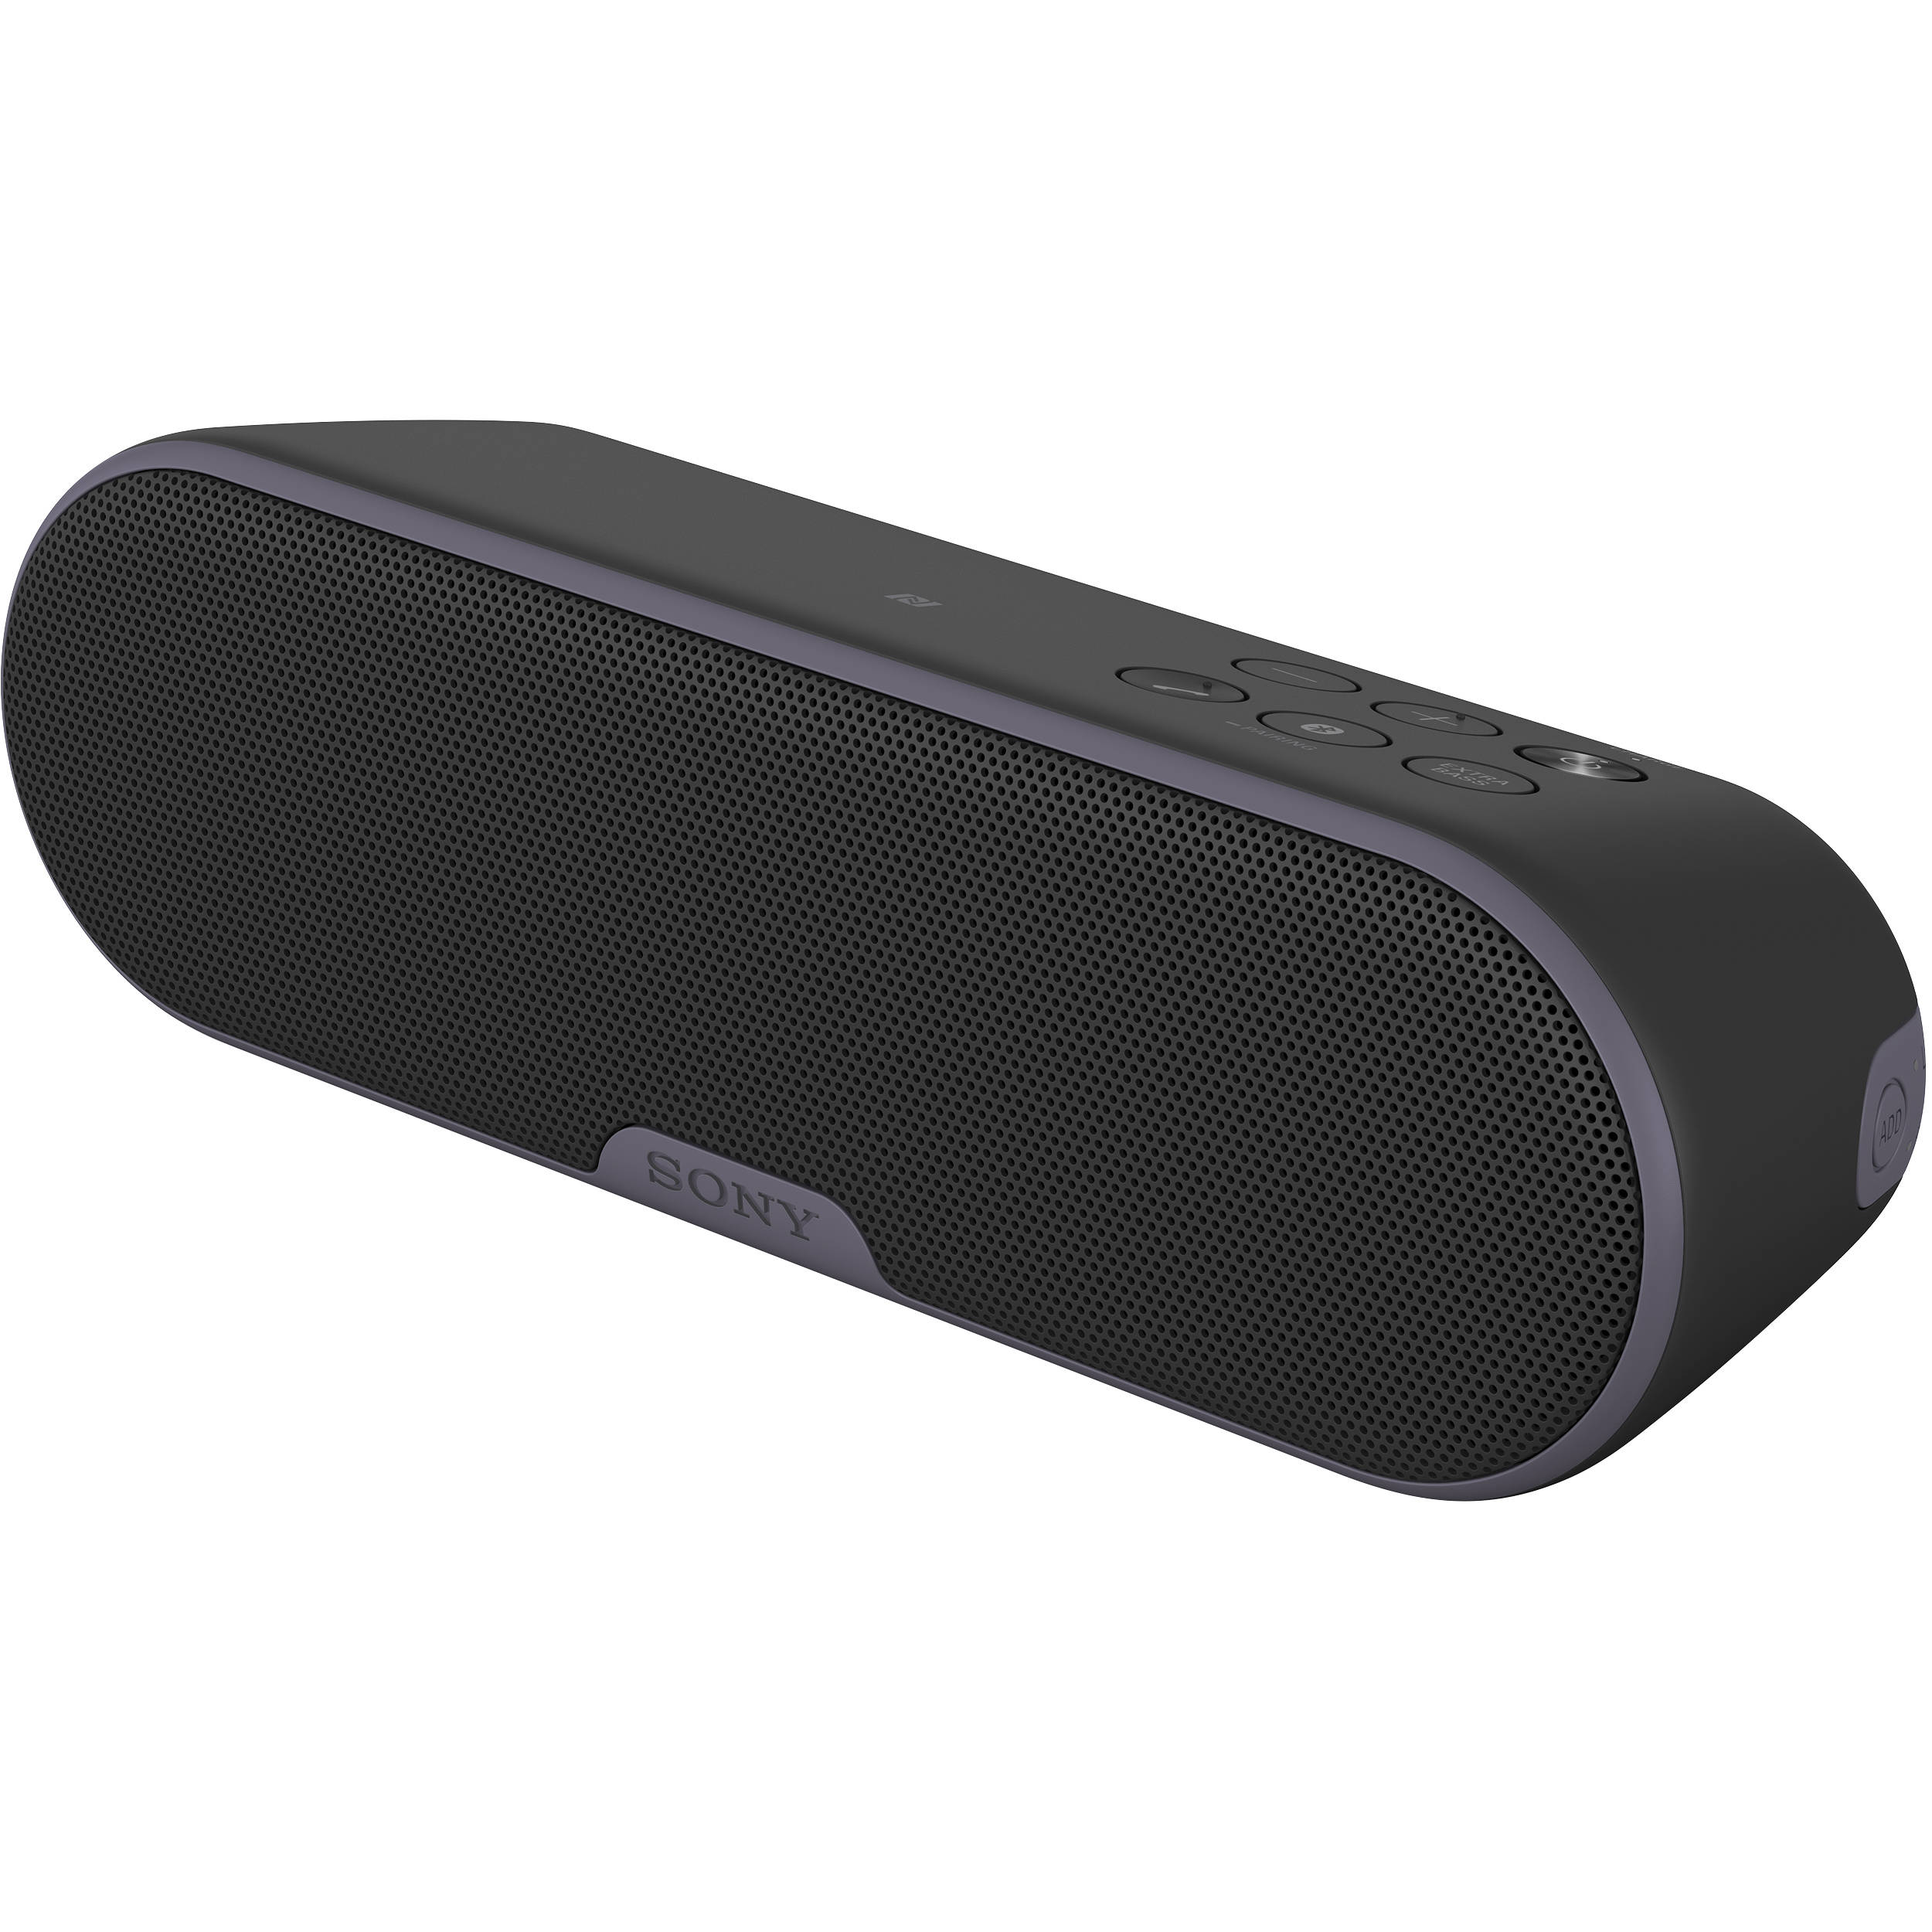 sony wireless speakers. sony srs-xb2 portable bluetooth wireless speaker (black) speakers f